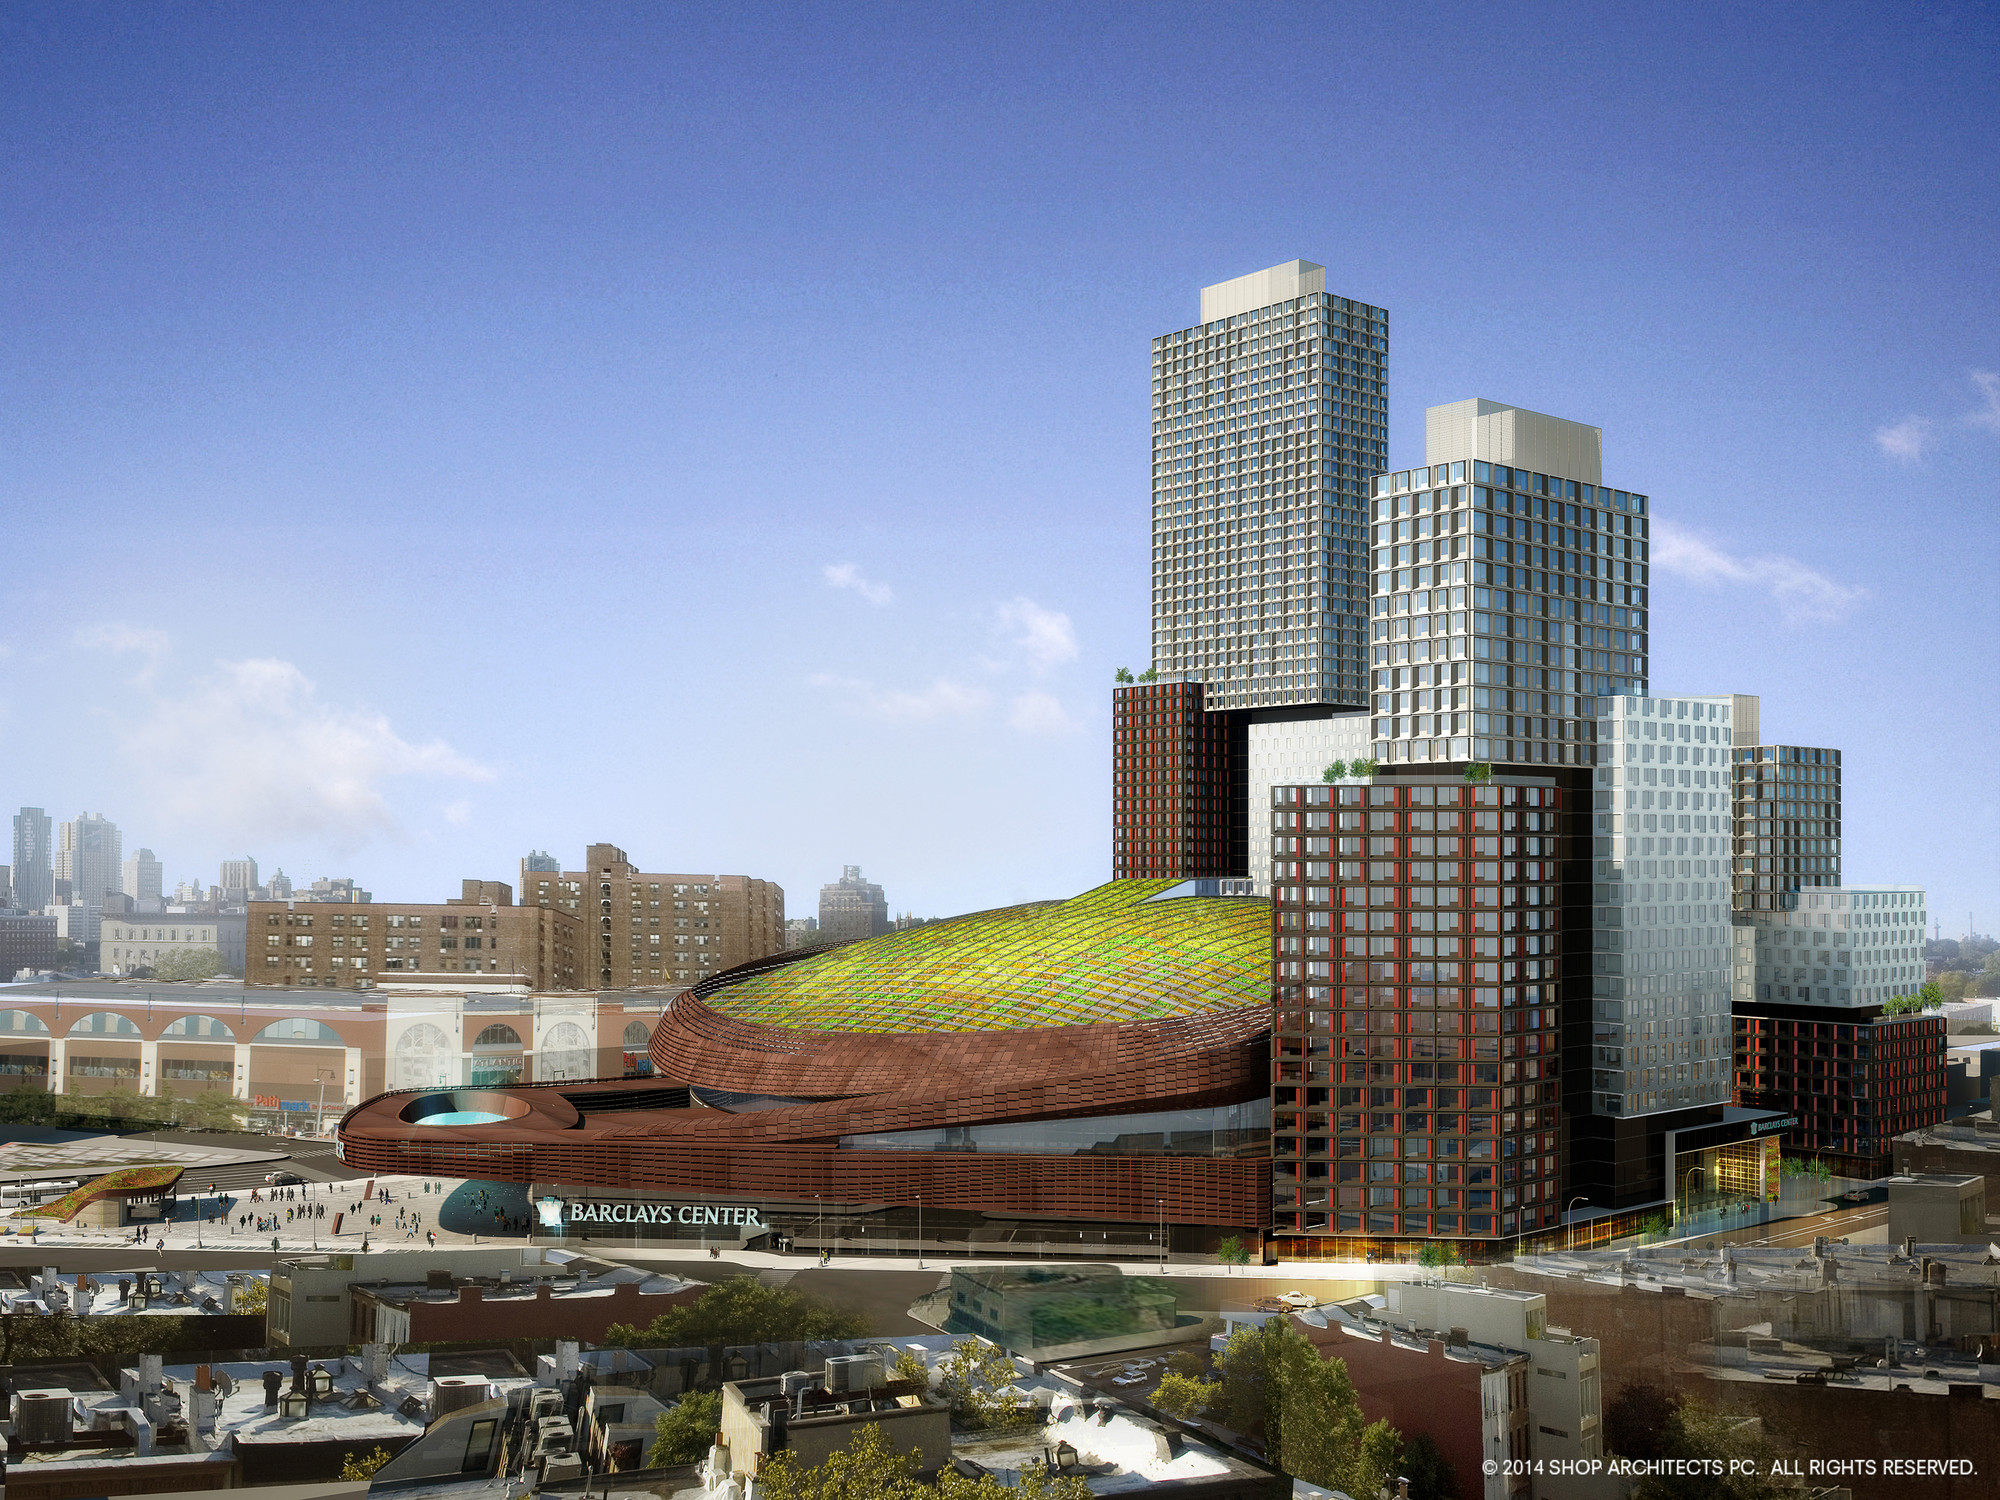 Barclays Center to be Topped with Massive Green Roof, © SHoP Architects